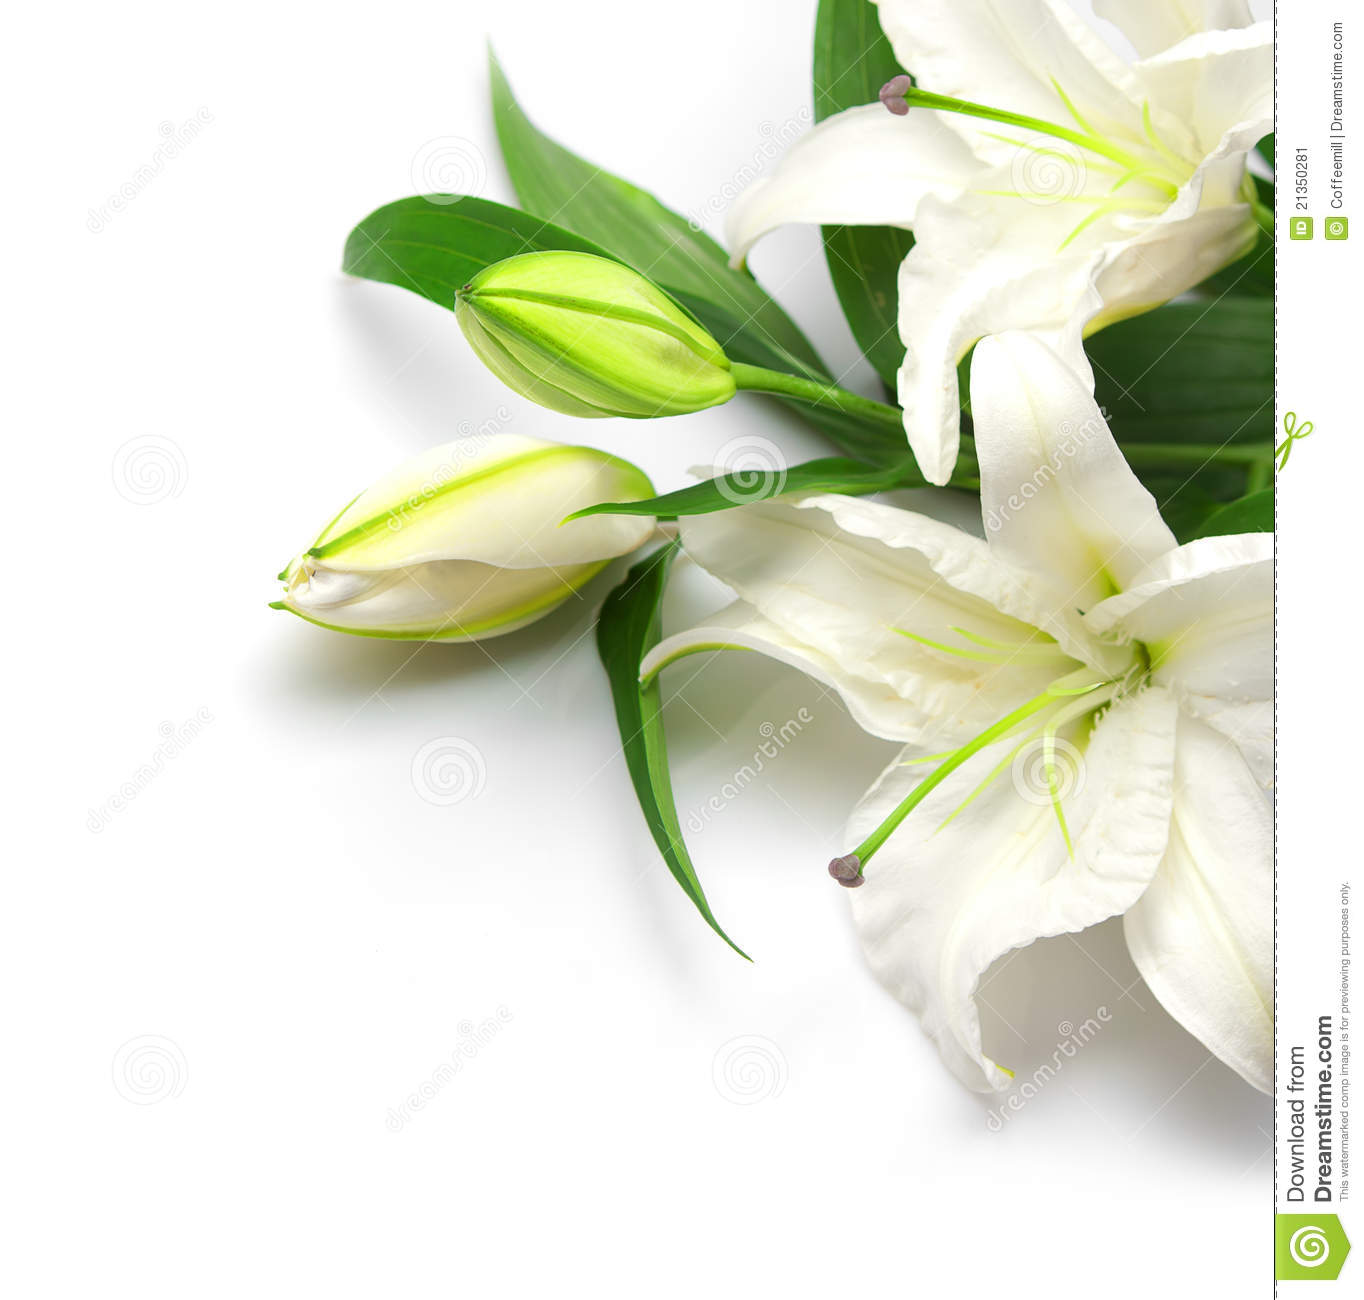 More similar stock images of ` Bouquet of white lilies `